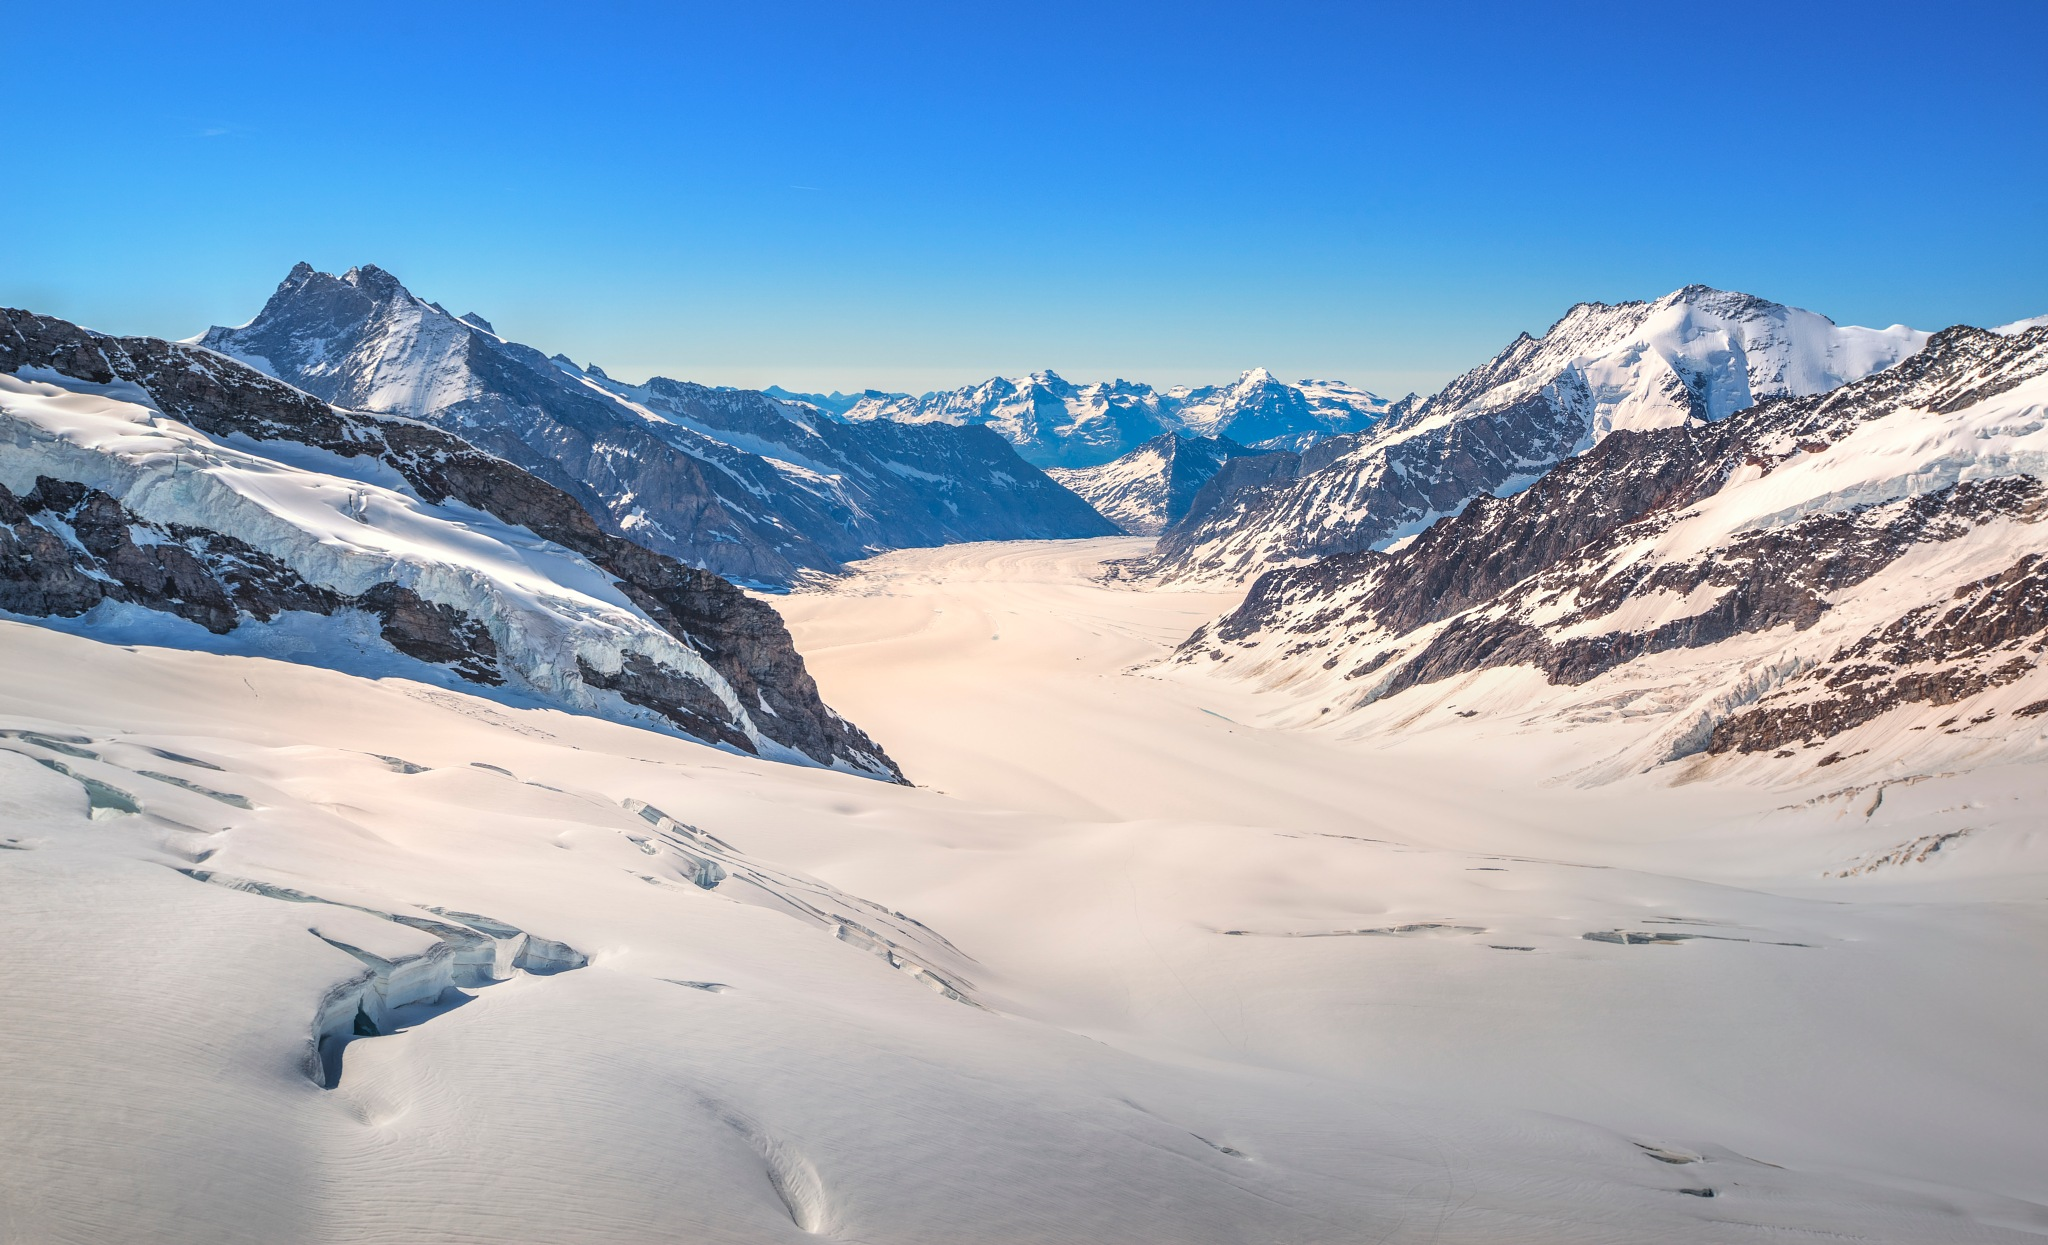 Ice Fields in Switzerland by Tim Martin